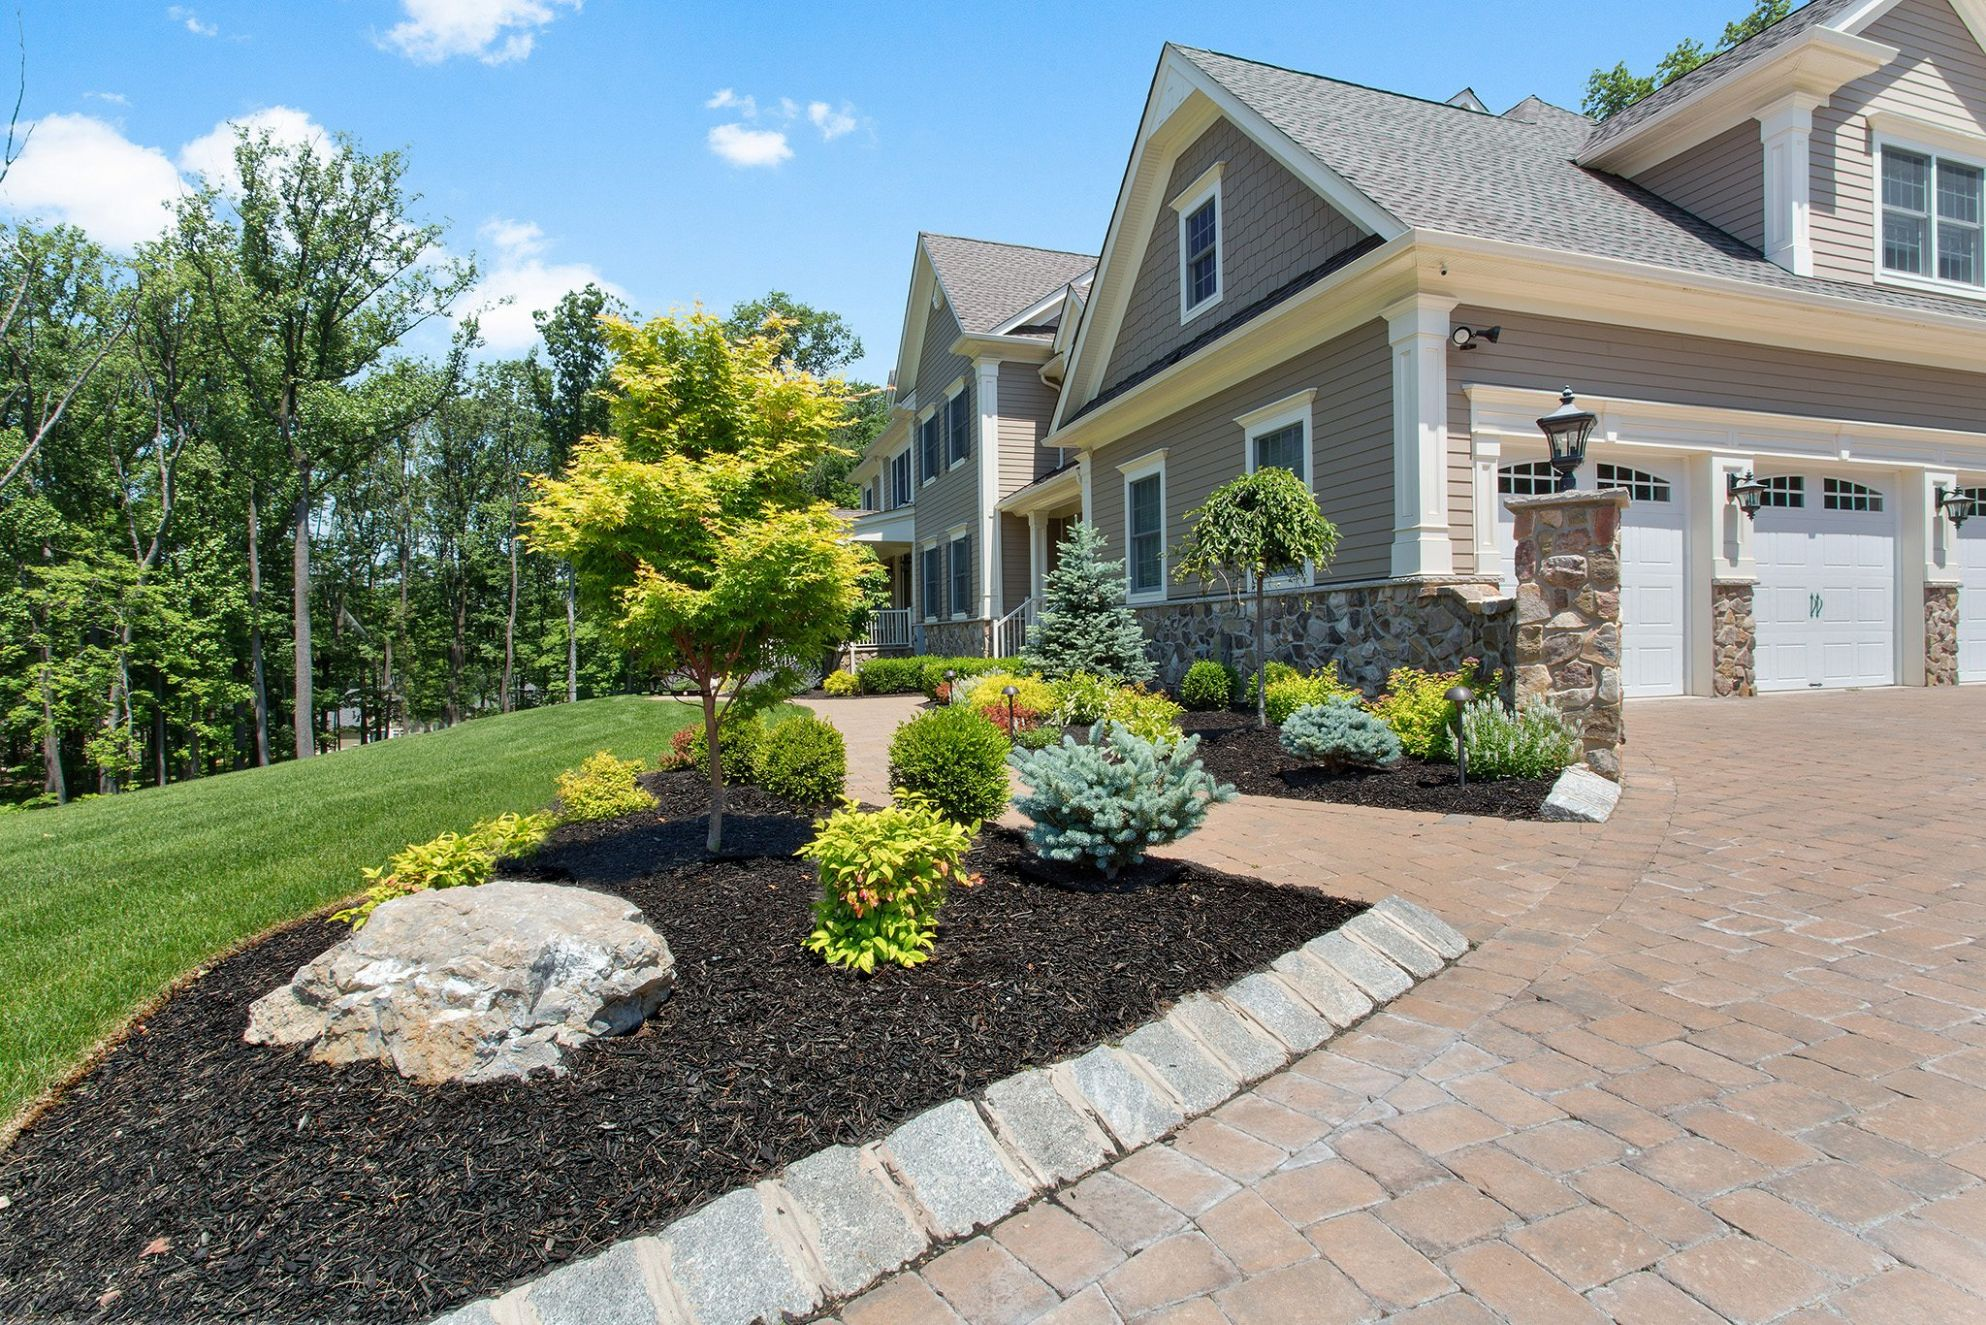 9 Unique Front Yard Landscape Ideas for Your Somerset County Home